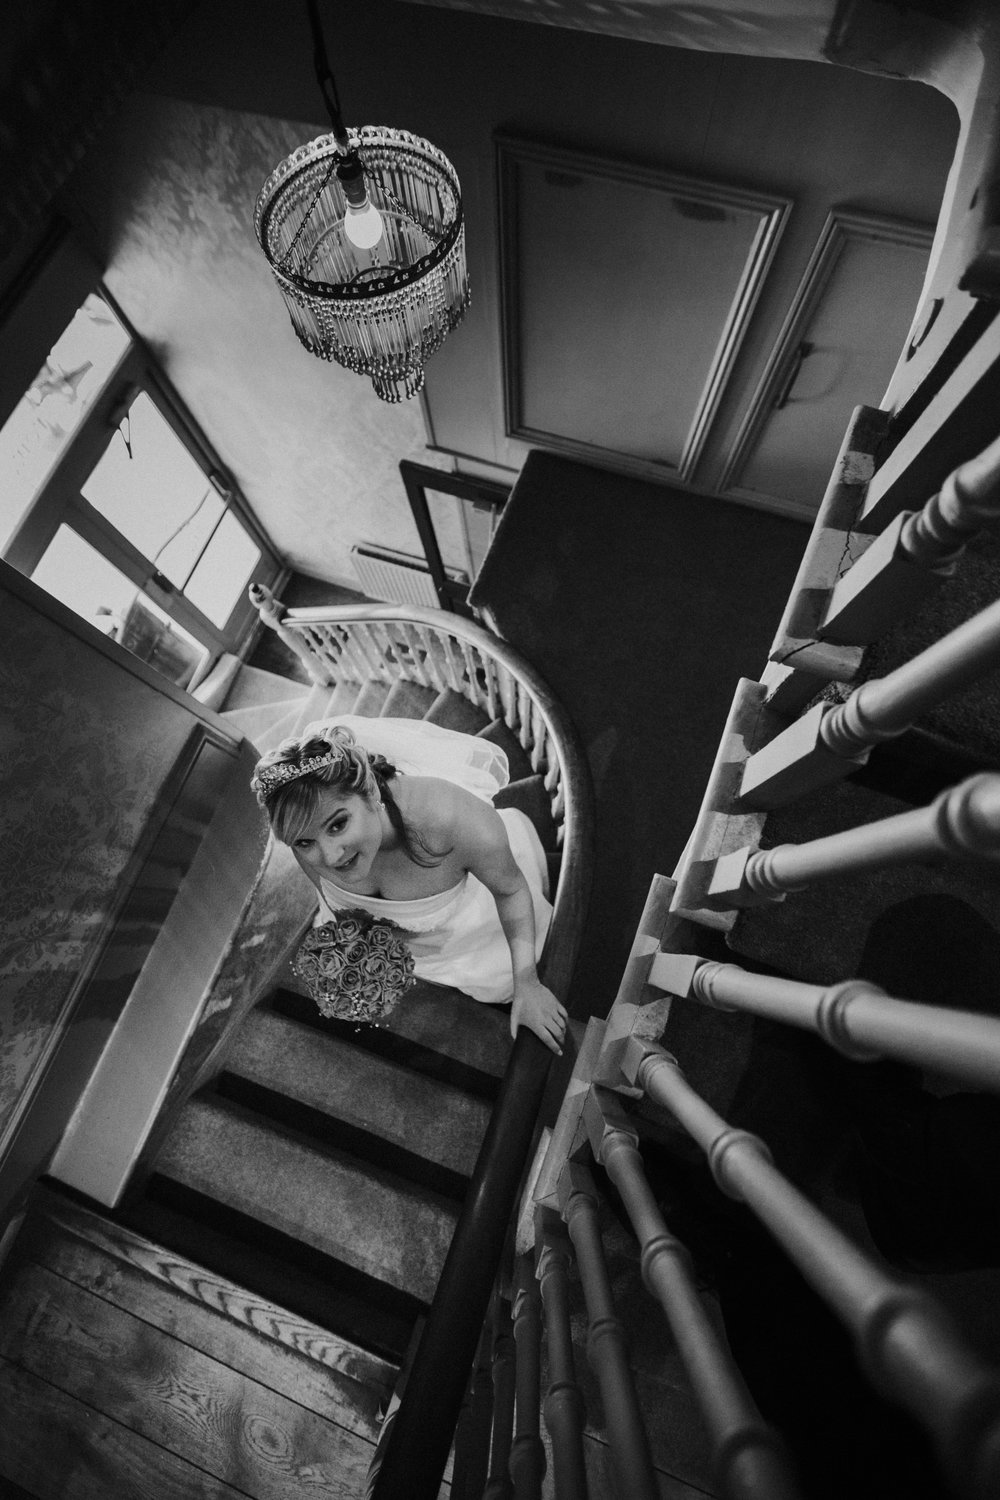 tunbridge-wells-hotel-london-kent-wedding-photography-bridal-portrait-129